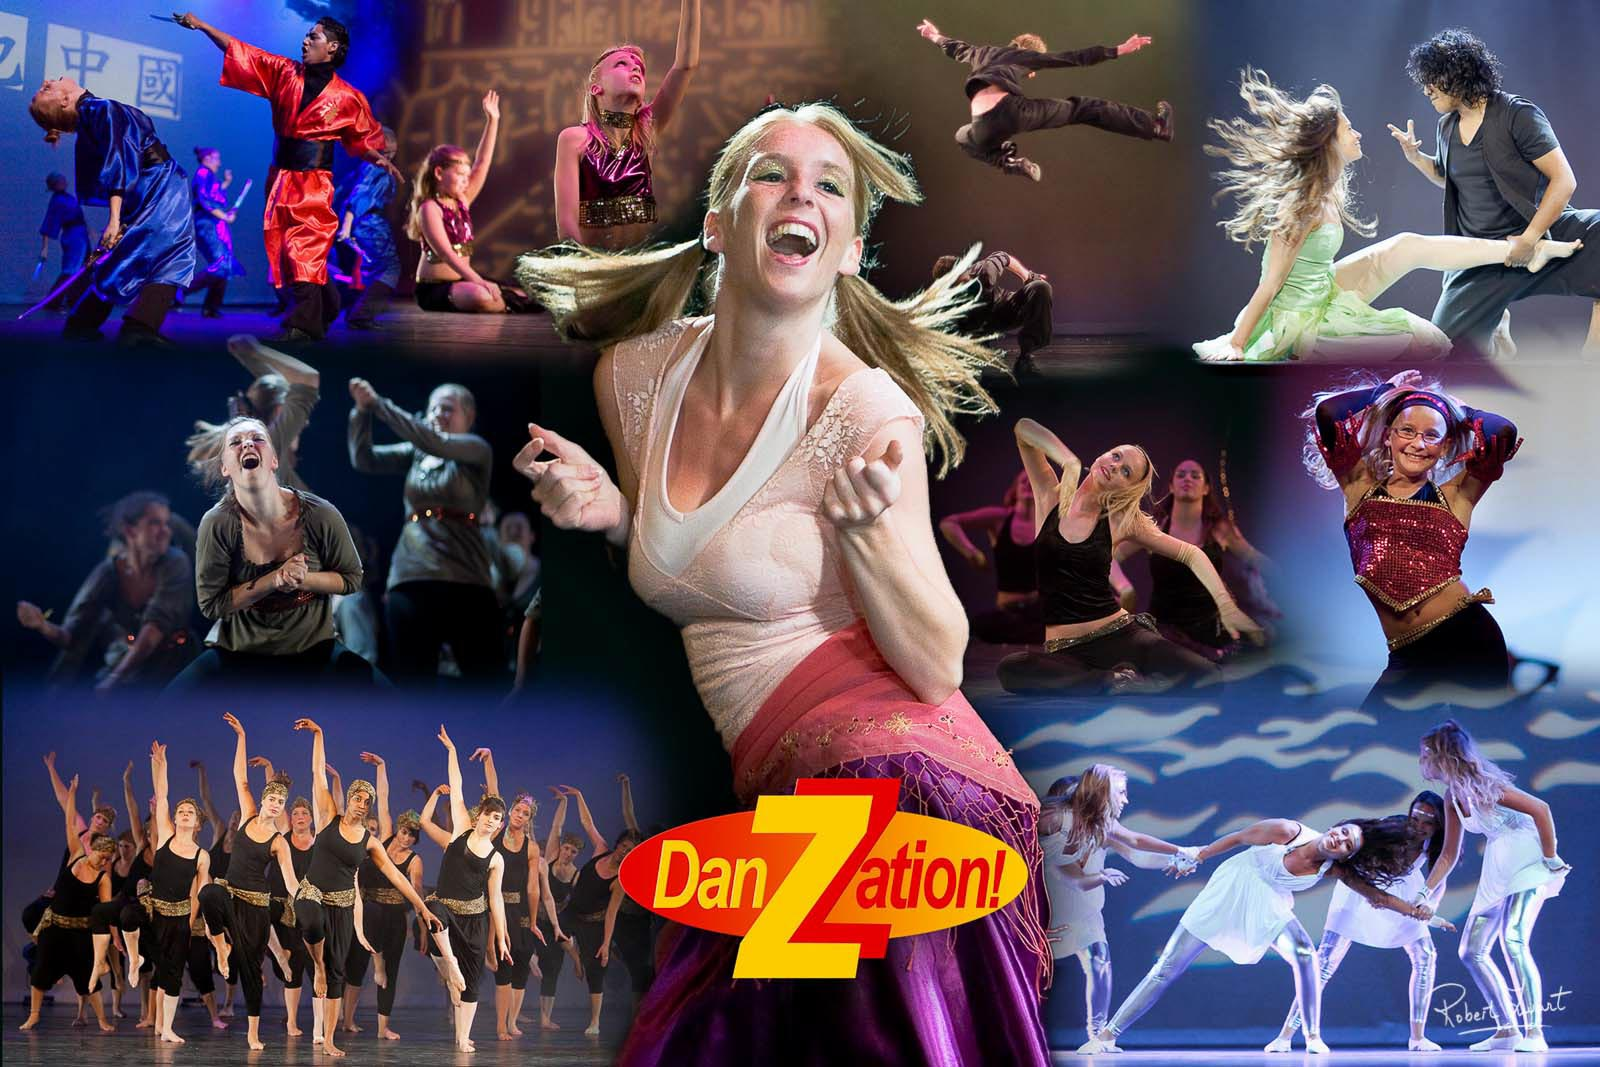 Compilation of dancers of danzation